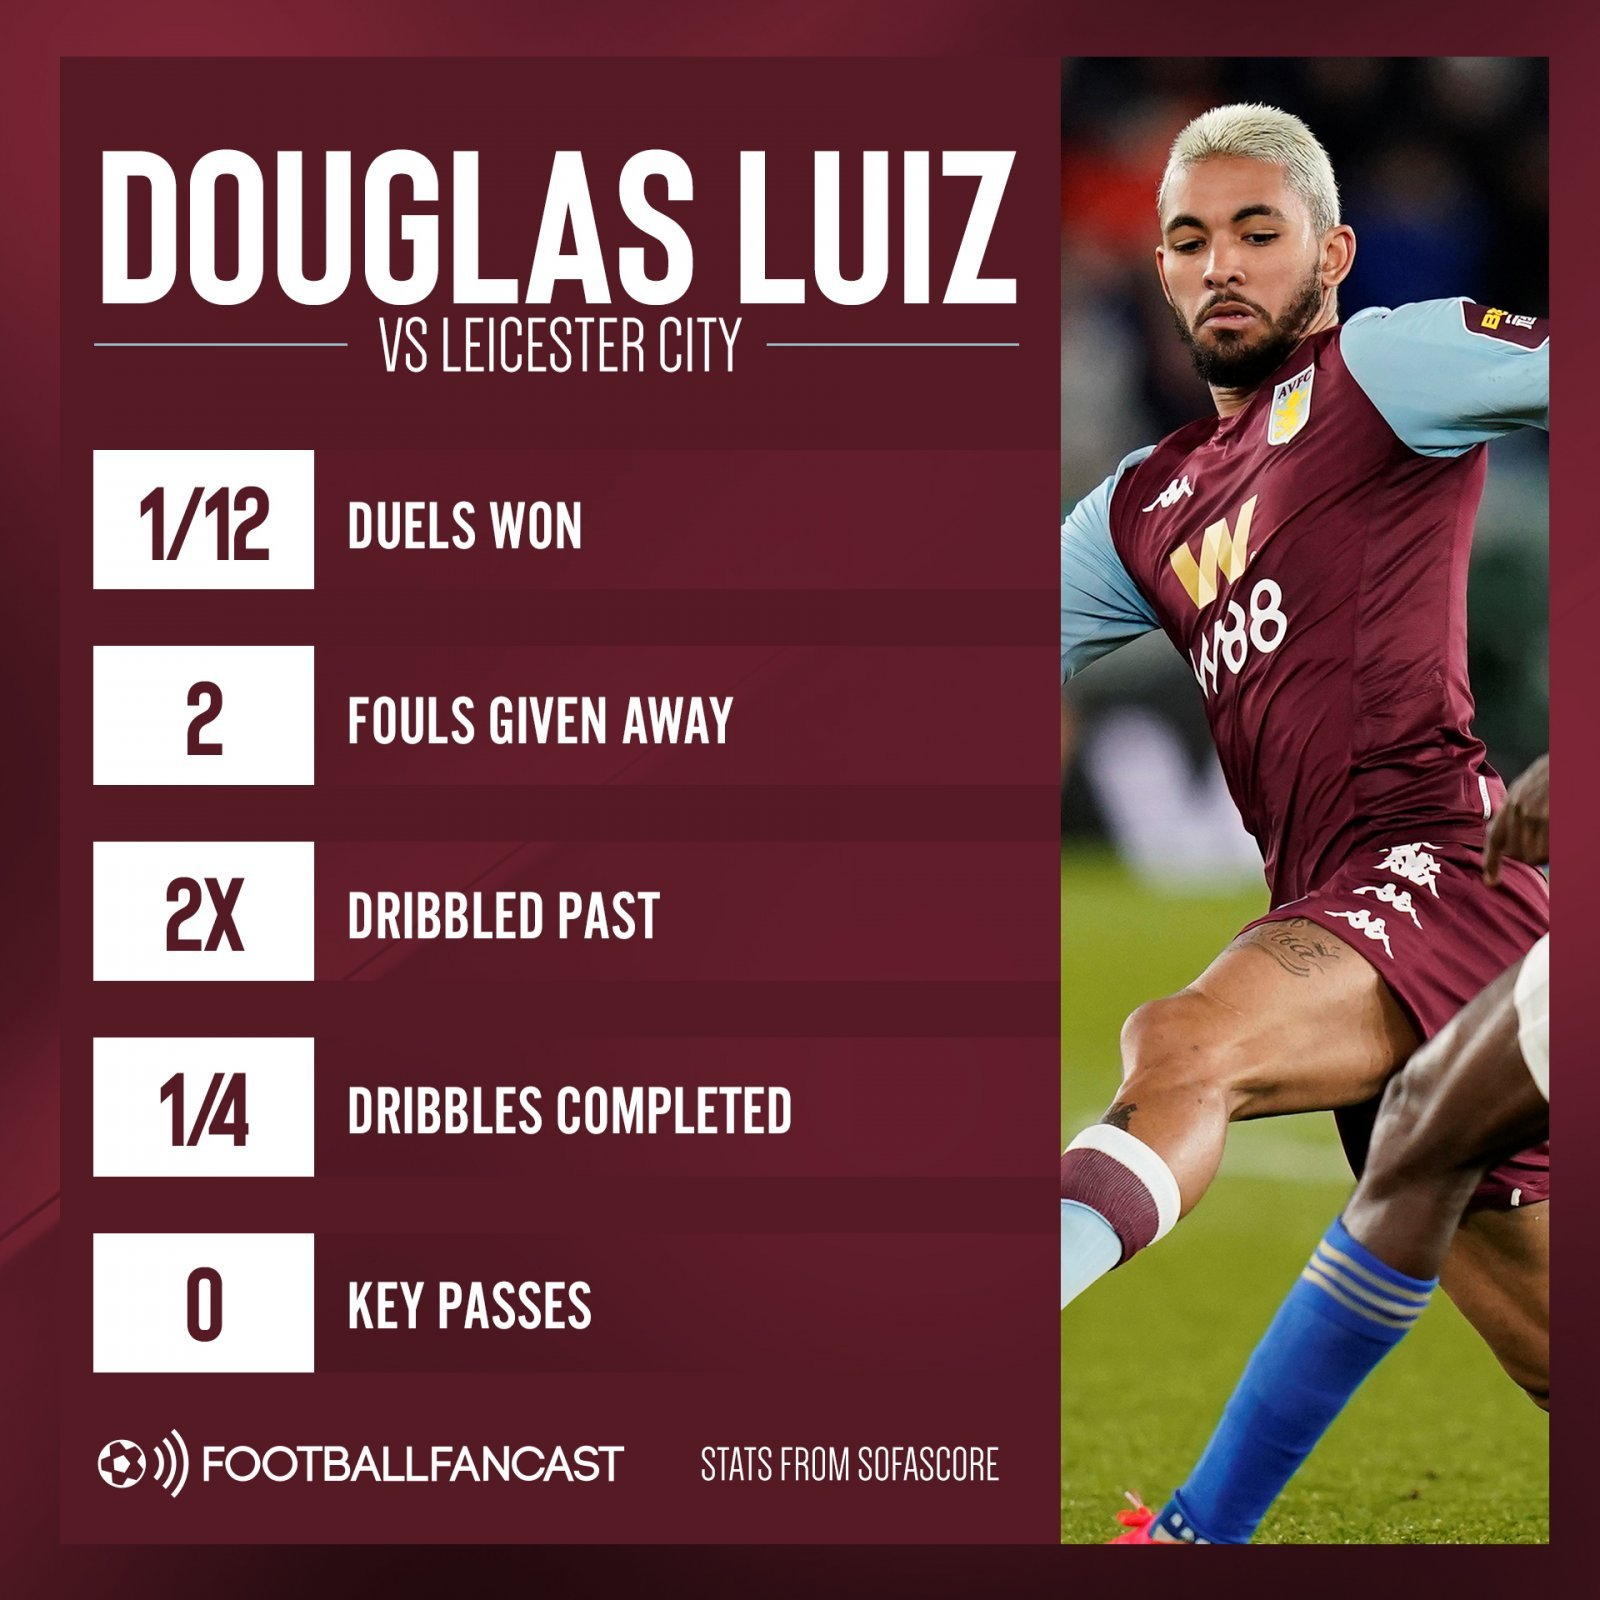 Douglas Luiz vs Leicester - Lifeline looming: £18m-rated Villa ace may have played his way out of Smith's XI - opinion